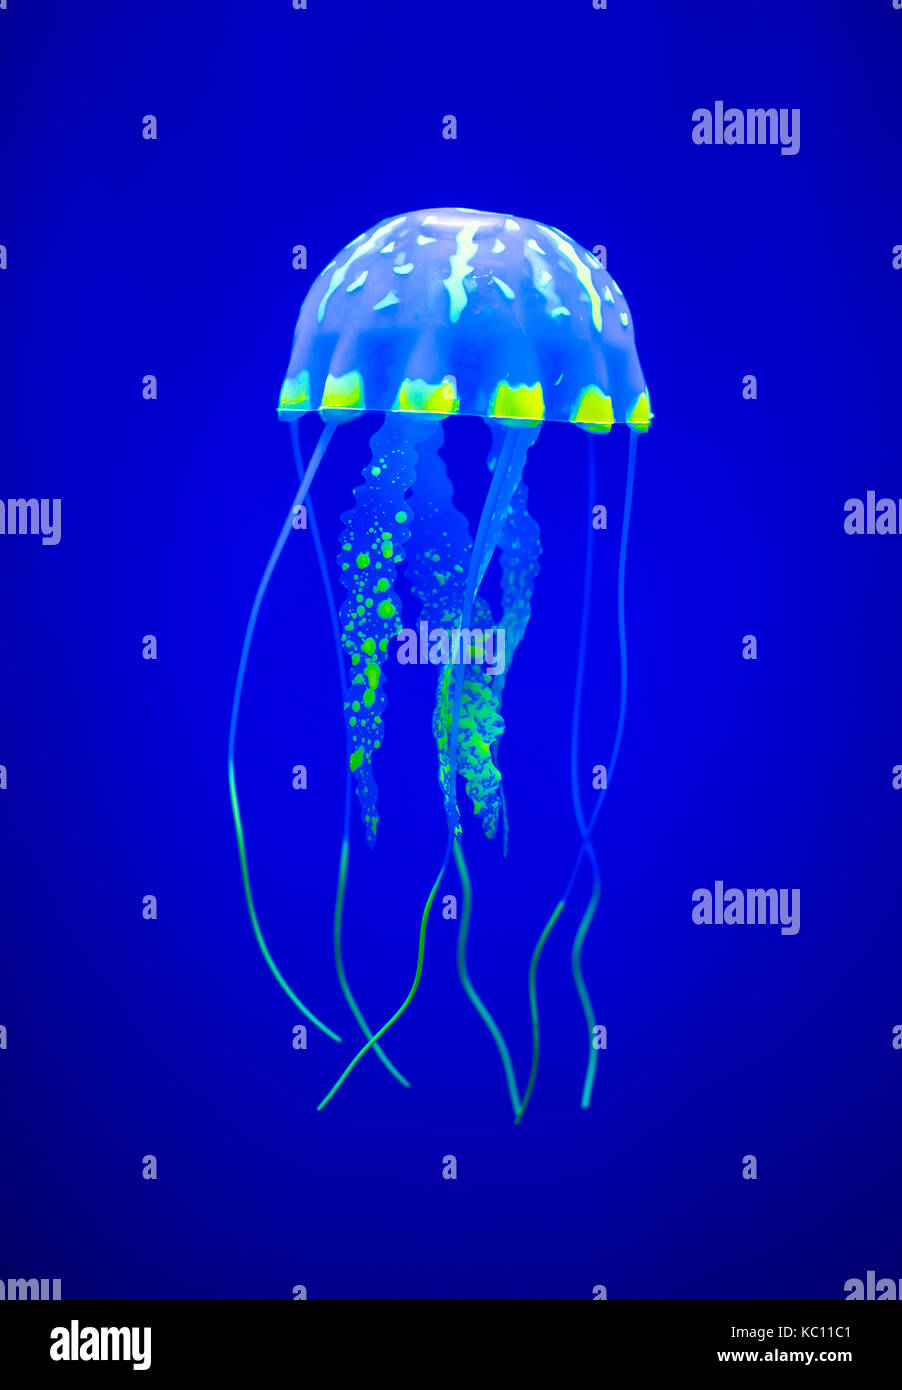 Real jellyfish on a blue background - Stock Image